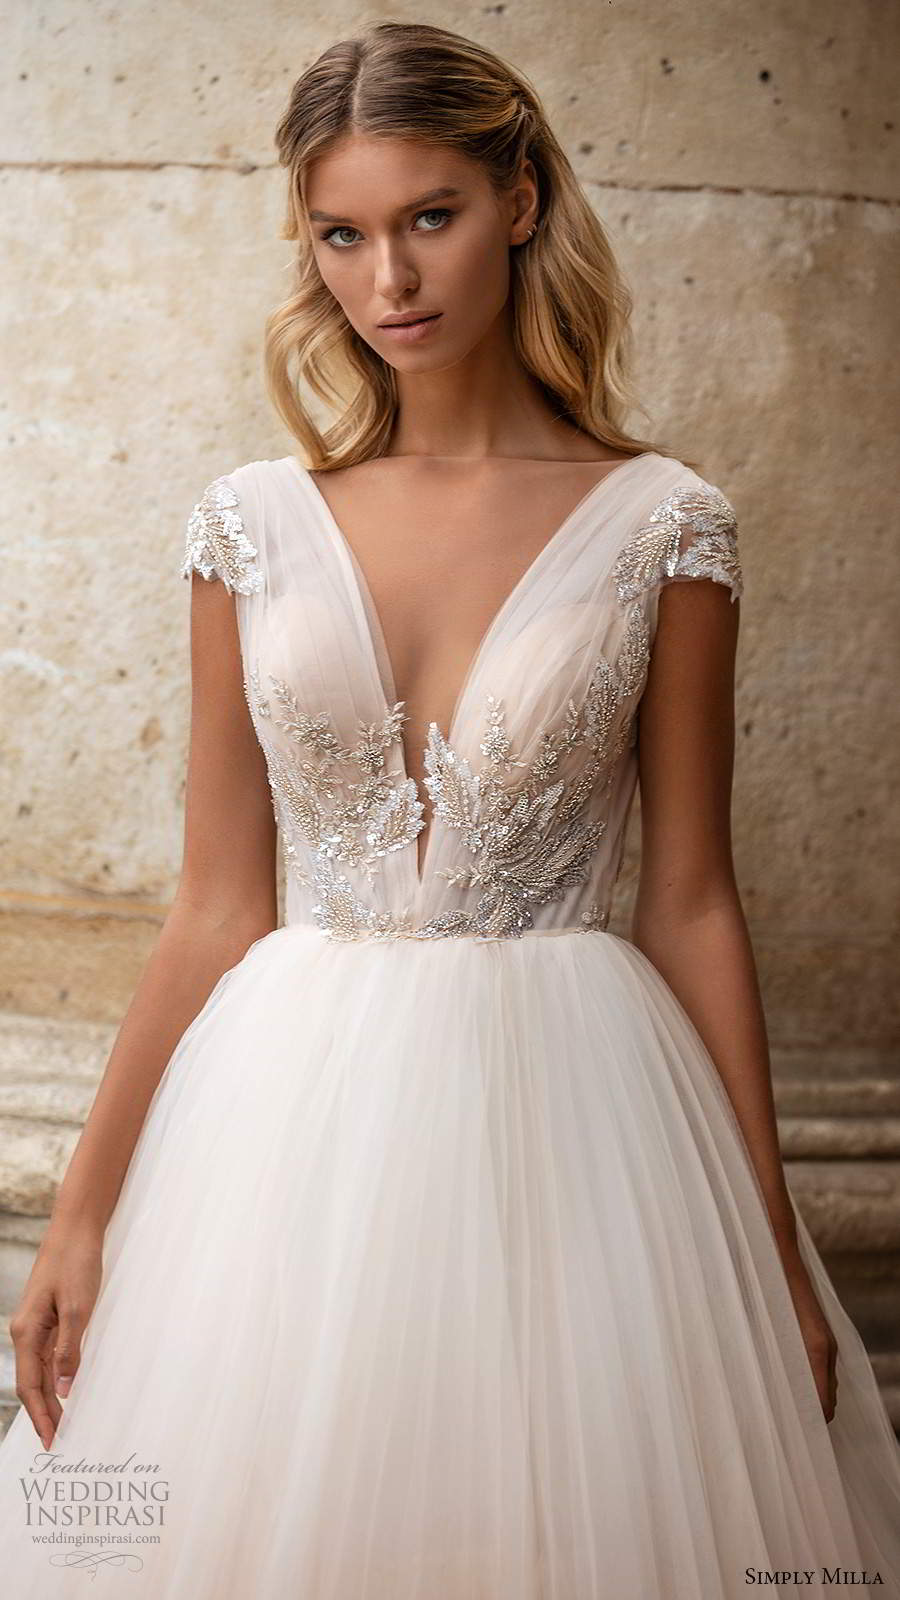 simply milla nova 2020 bridal cap sleeves plunging v neckline embellished bodice a line ball gown blush wedding dress chapel train scoop back (3) zv